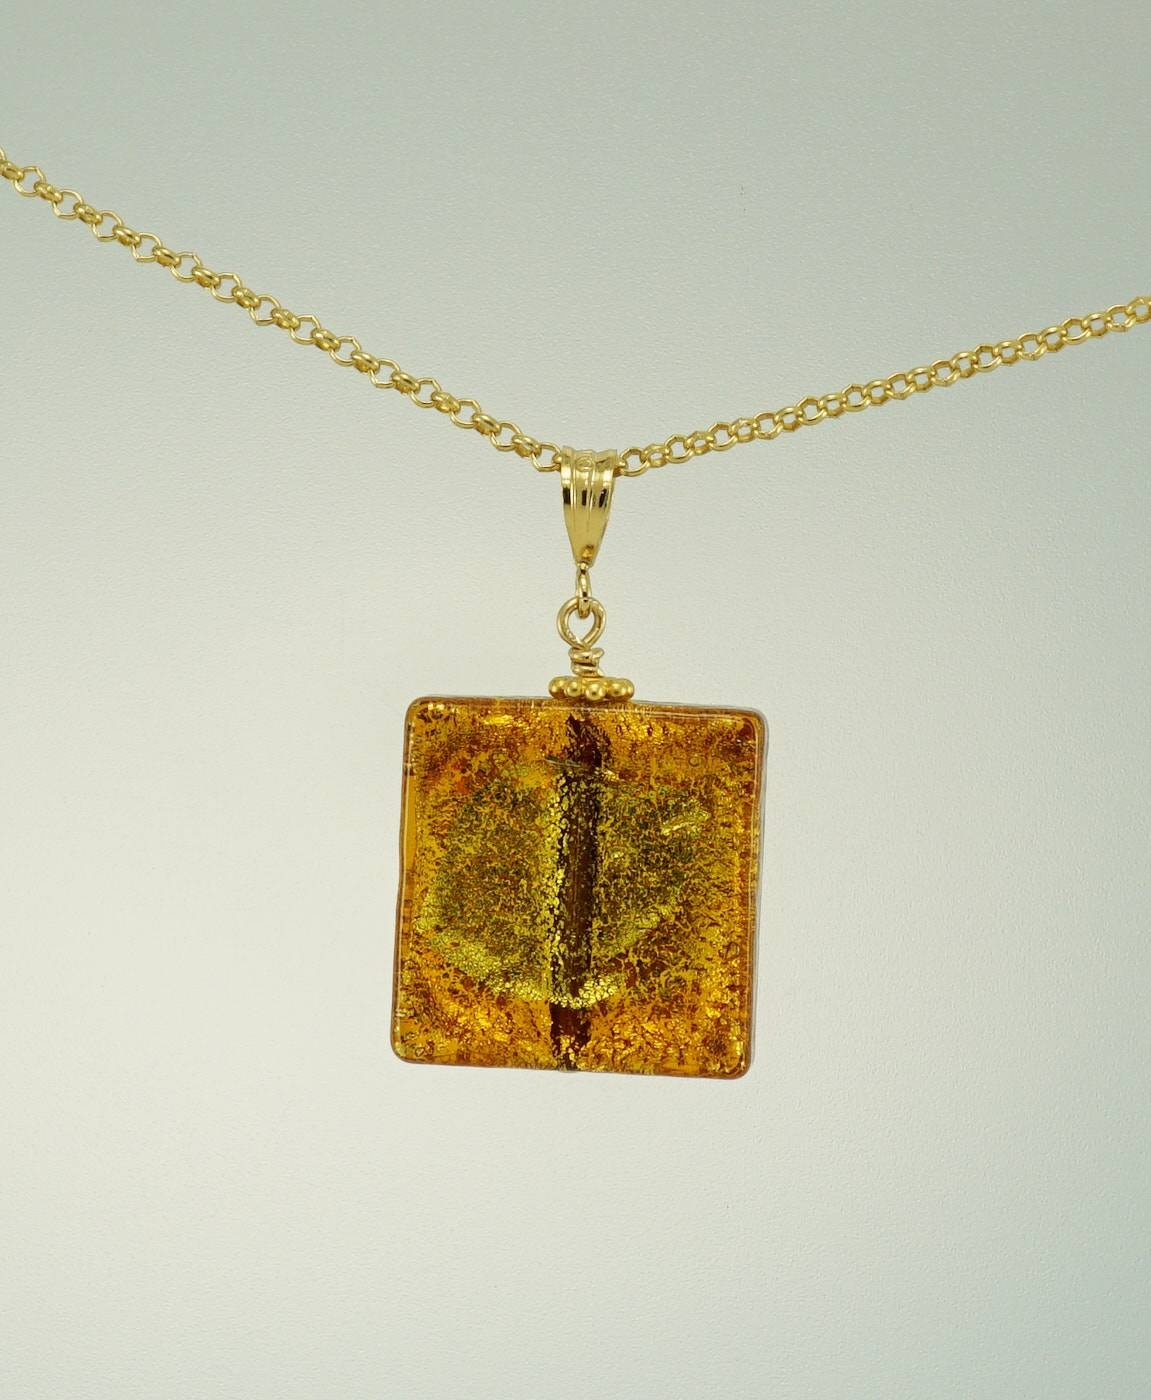 Gold Venetian Glass Square Pendant – Lily Jewels Paddington Within Venetian Glass Pendants (View 11 of 15)